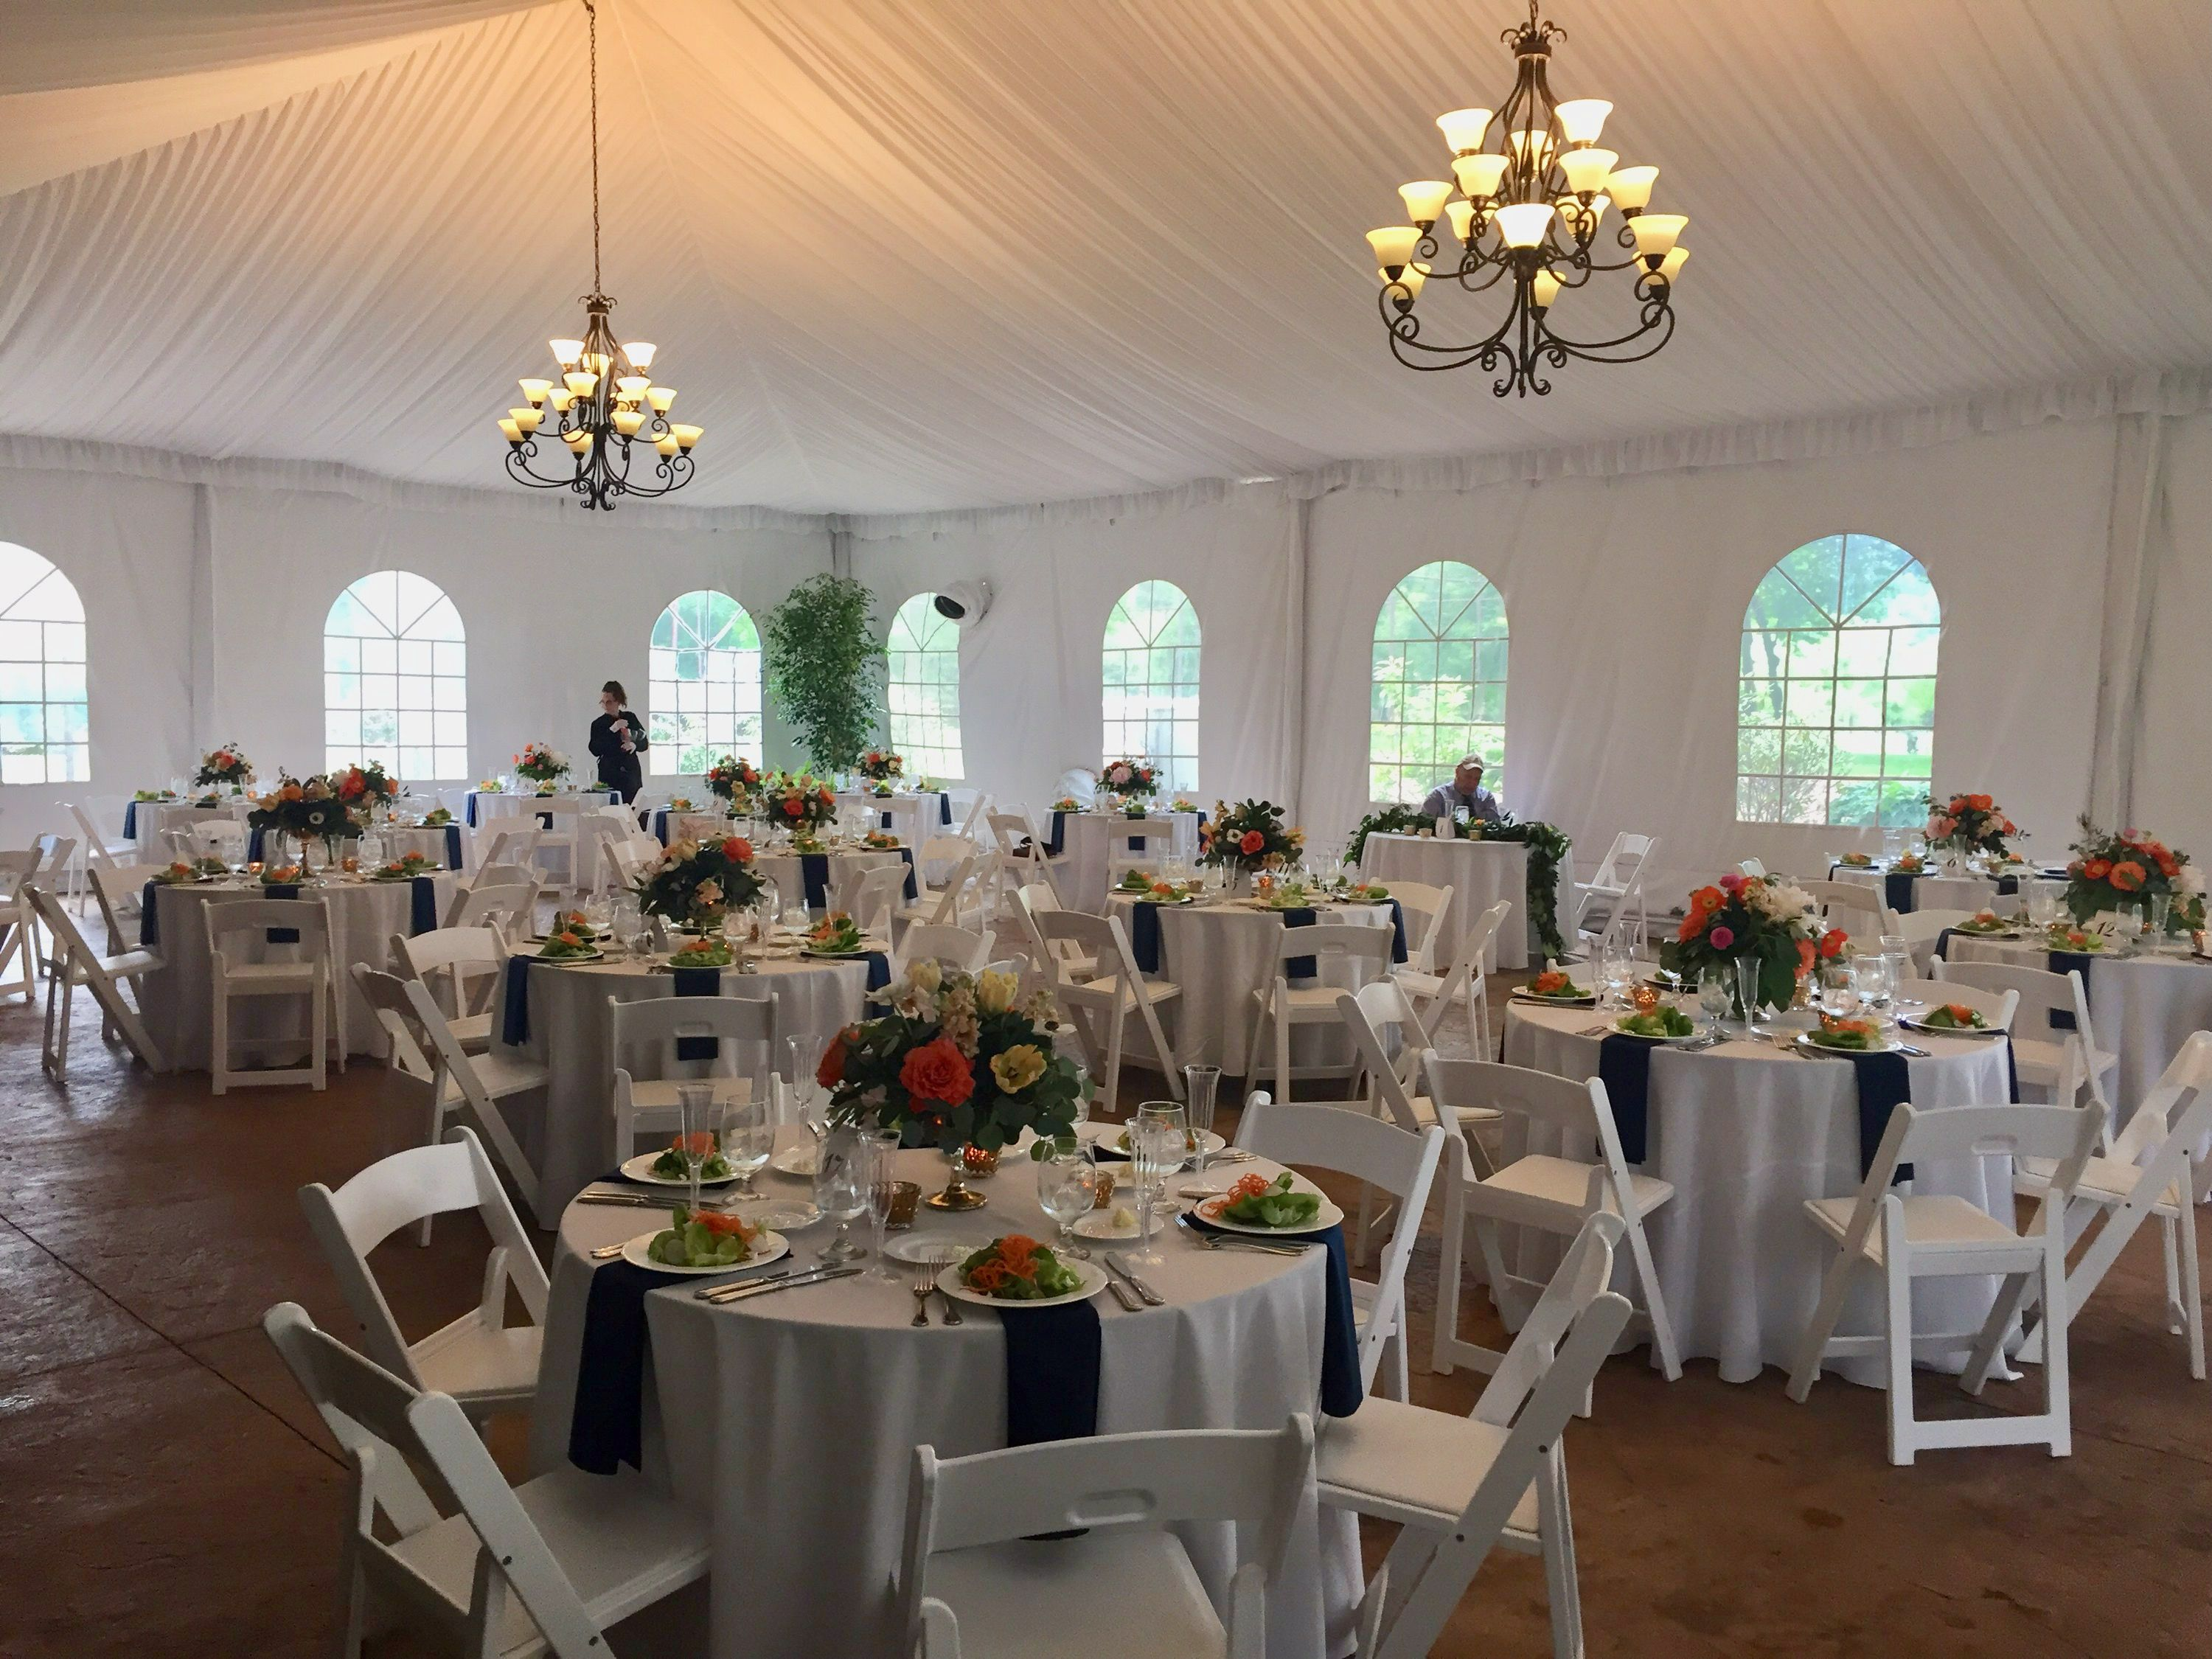 Party Tent By The Carriage House Party Tent Table Decorations Carriage House